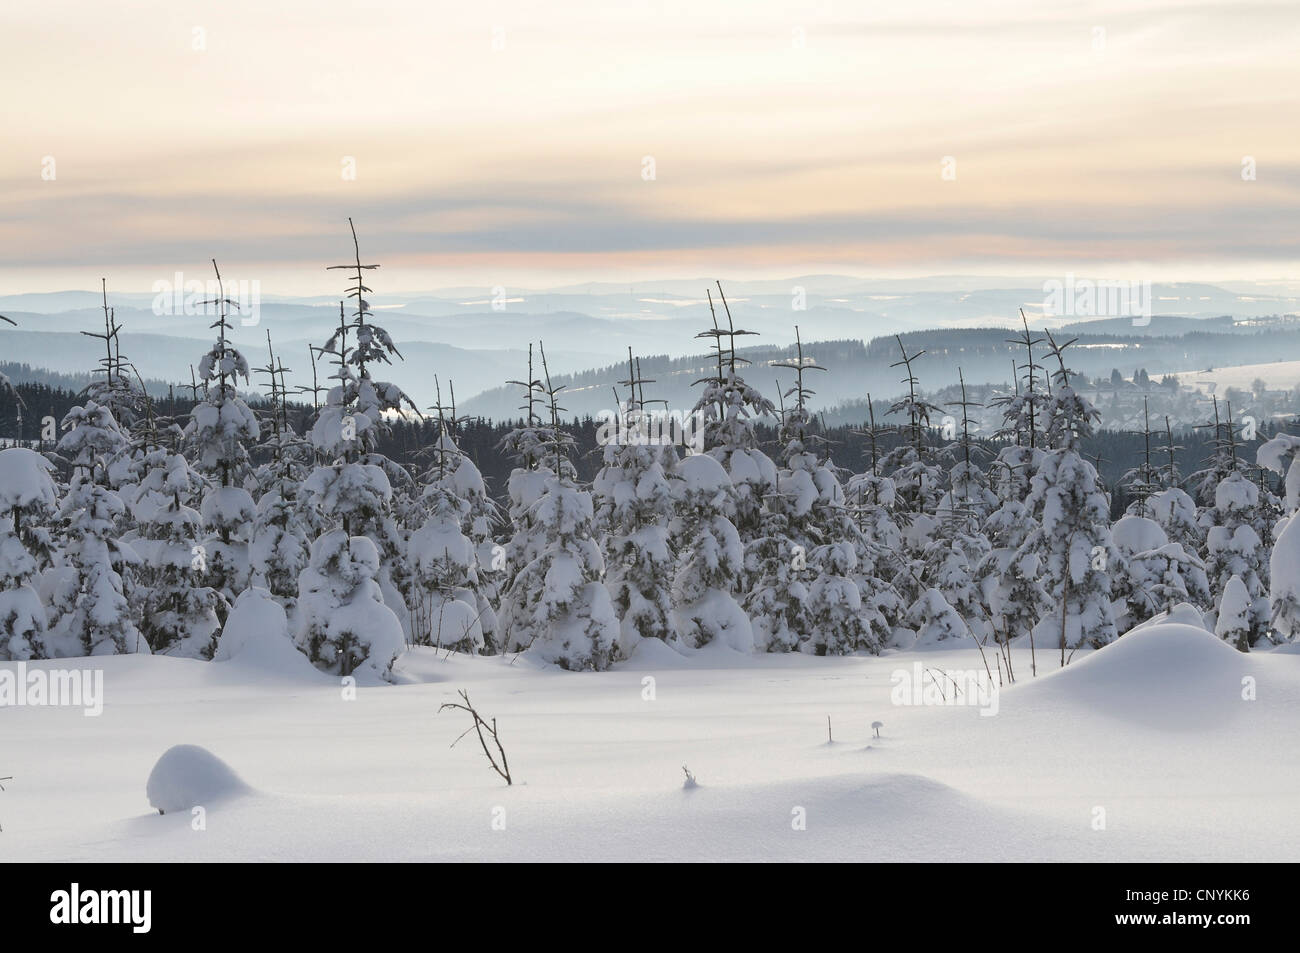 snowcovered young spruces, Germany - Stock Image